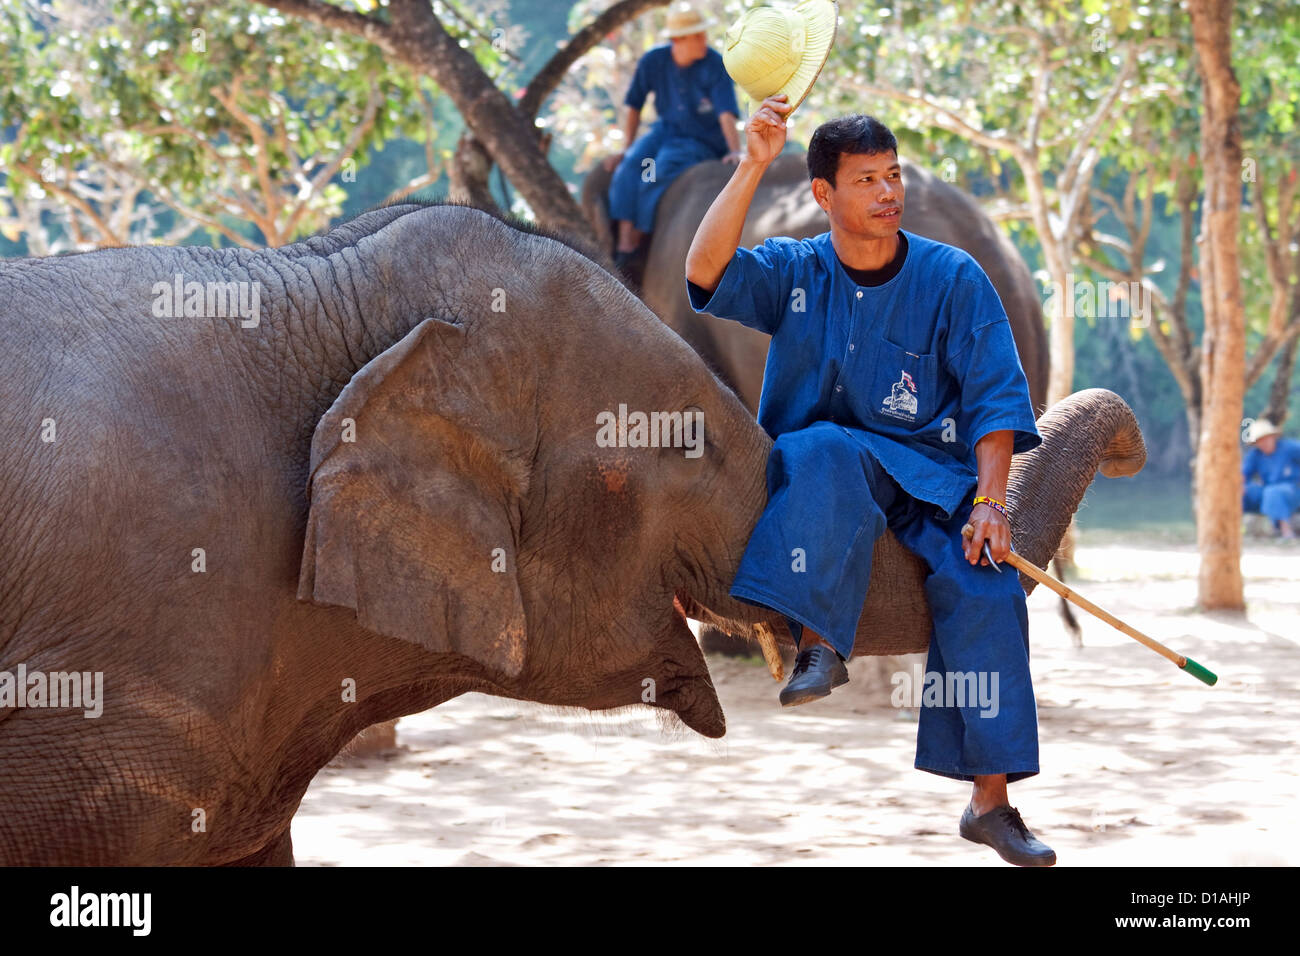 A mahout sitting on his elephant's trunk, Lampang, Thailand - Stock Image